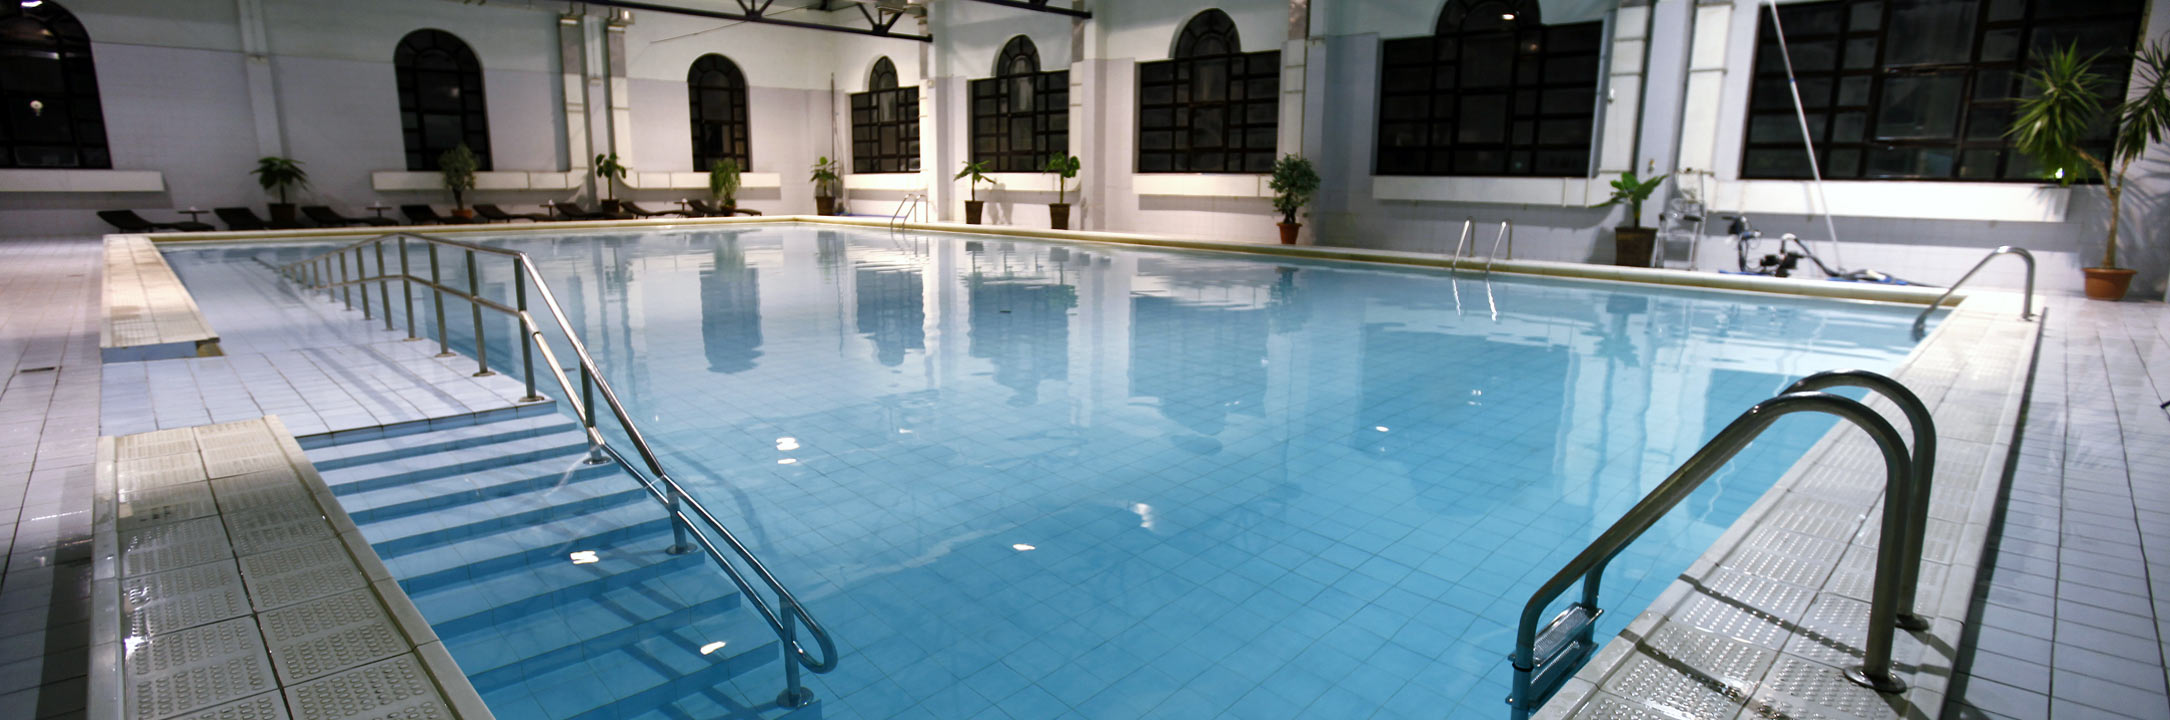 Indoor Pool Cross